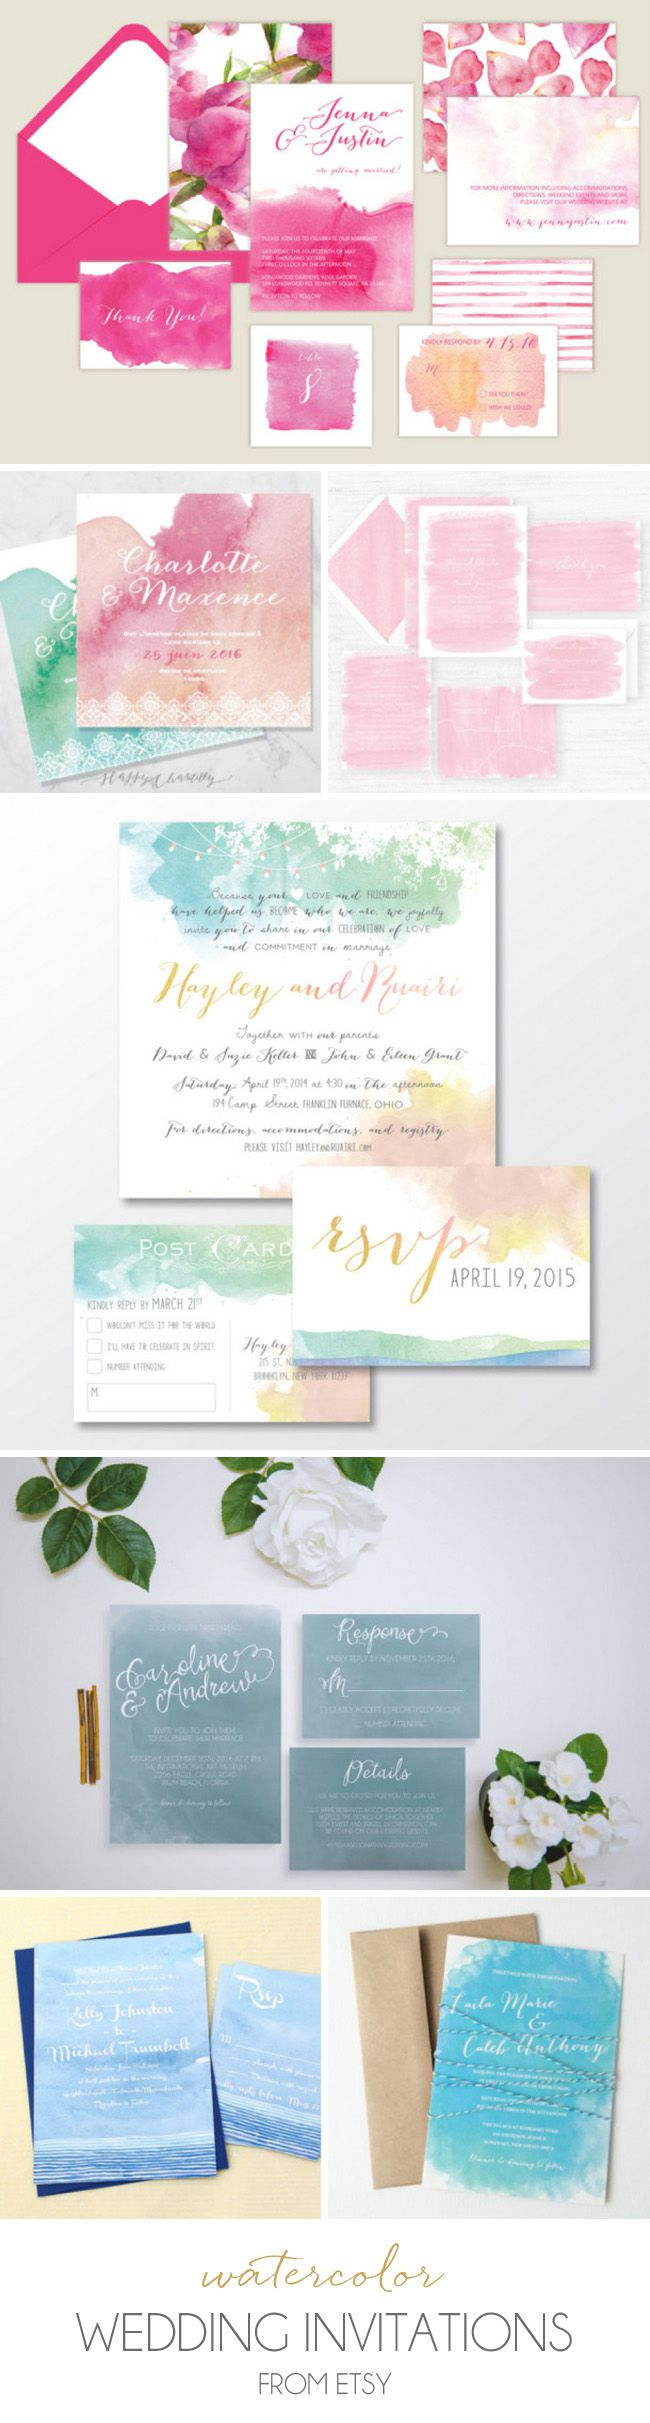 Watercolor Wedding Invitations from Etsy | SouthBound Bride